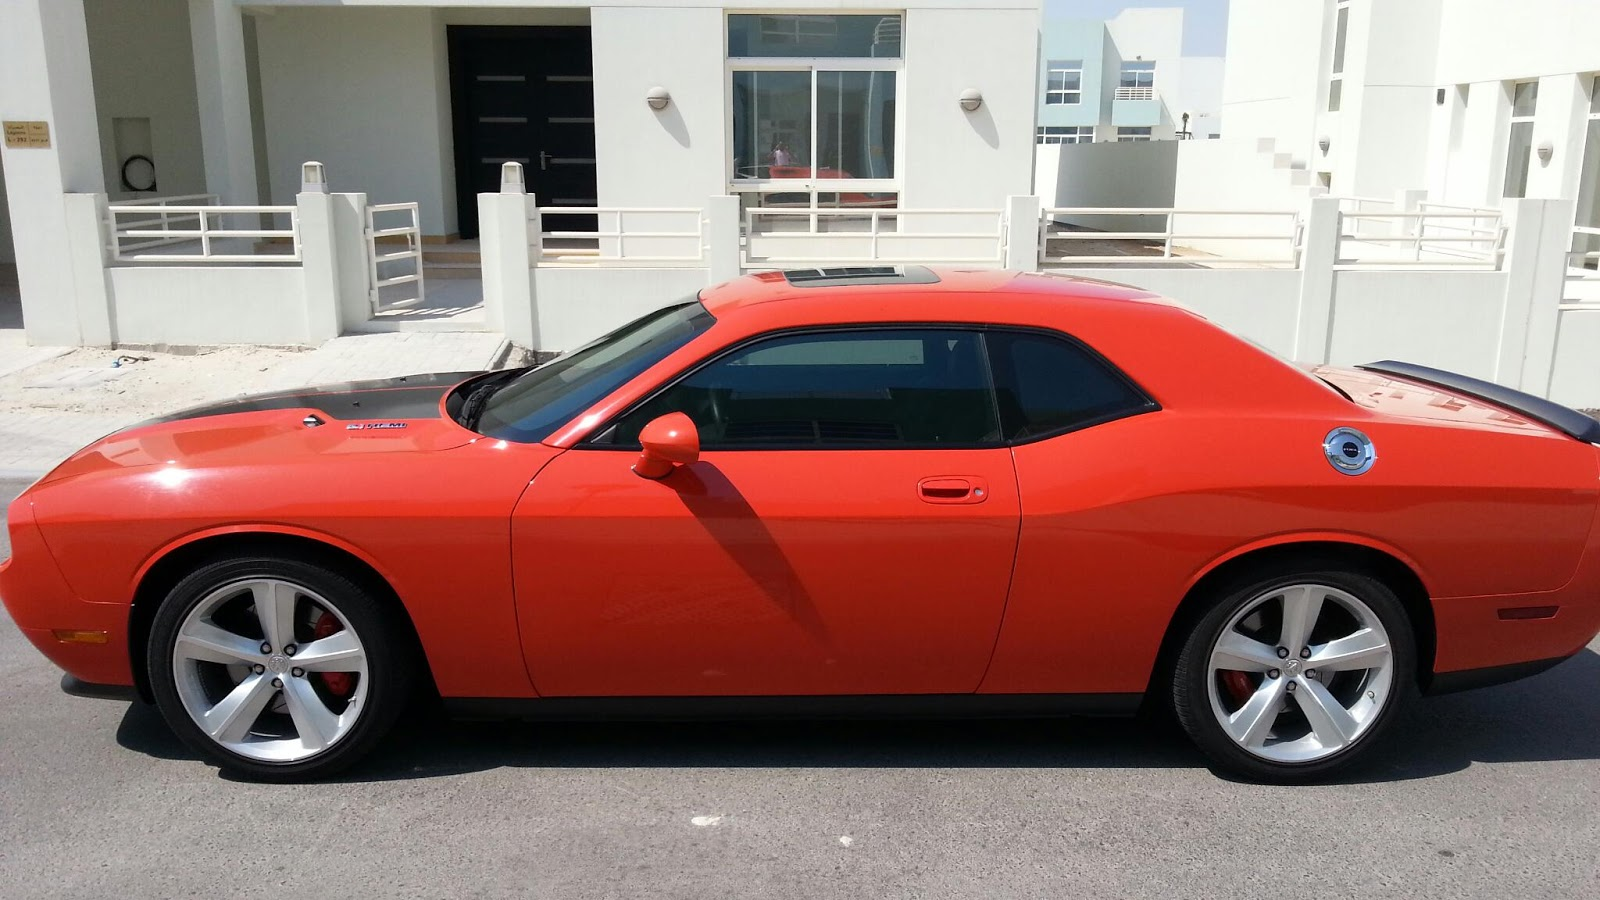 2012 dodge challenger srt8 392 for sale page 4 cargurus. Black Bedroom Furniture Sets. Home Design Ideas